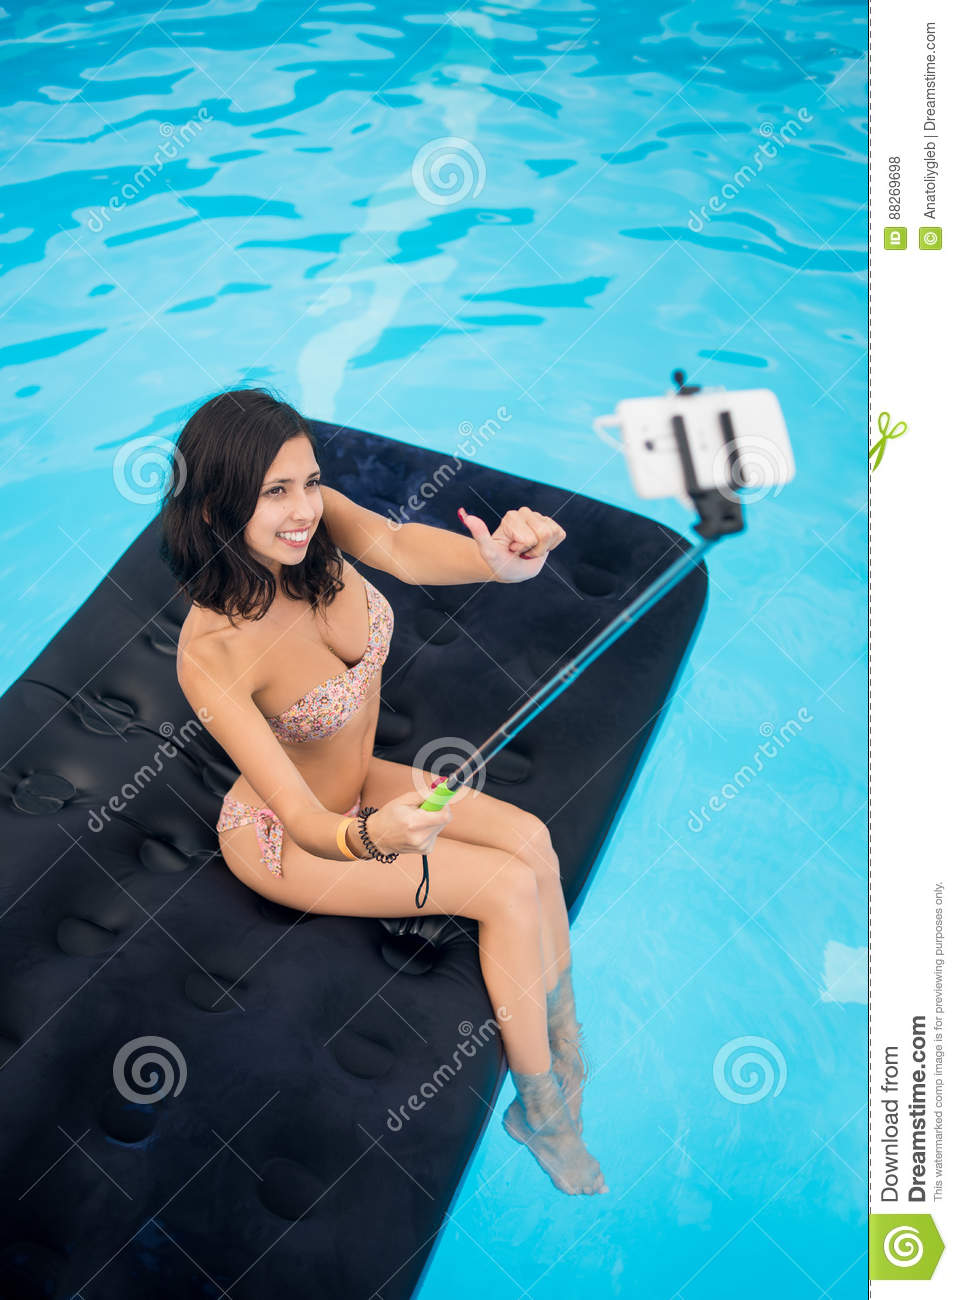 Girl taking selfie photo on the phone with selfie stick and showing thumbs up gesture of good class on mattress in pool